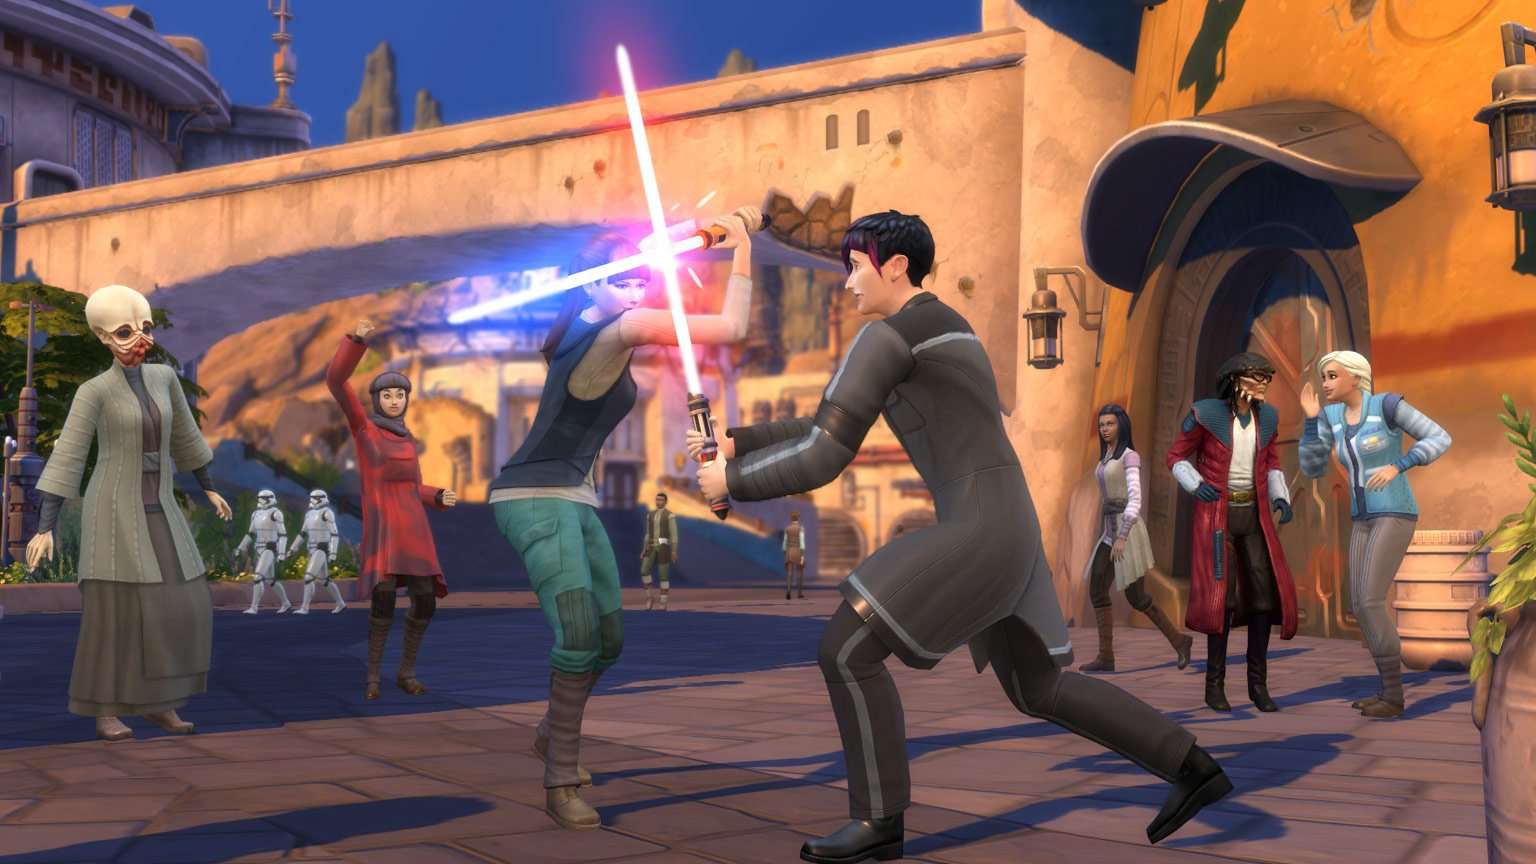 Lightsaber in the Star Wars Sims 4 expansion